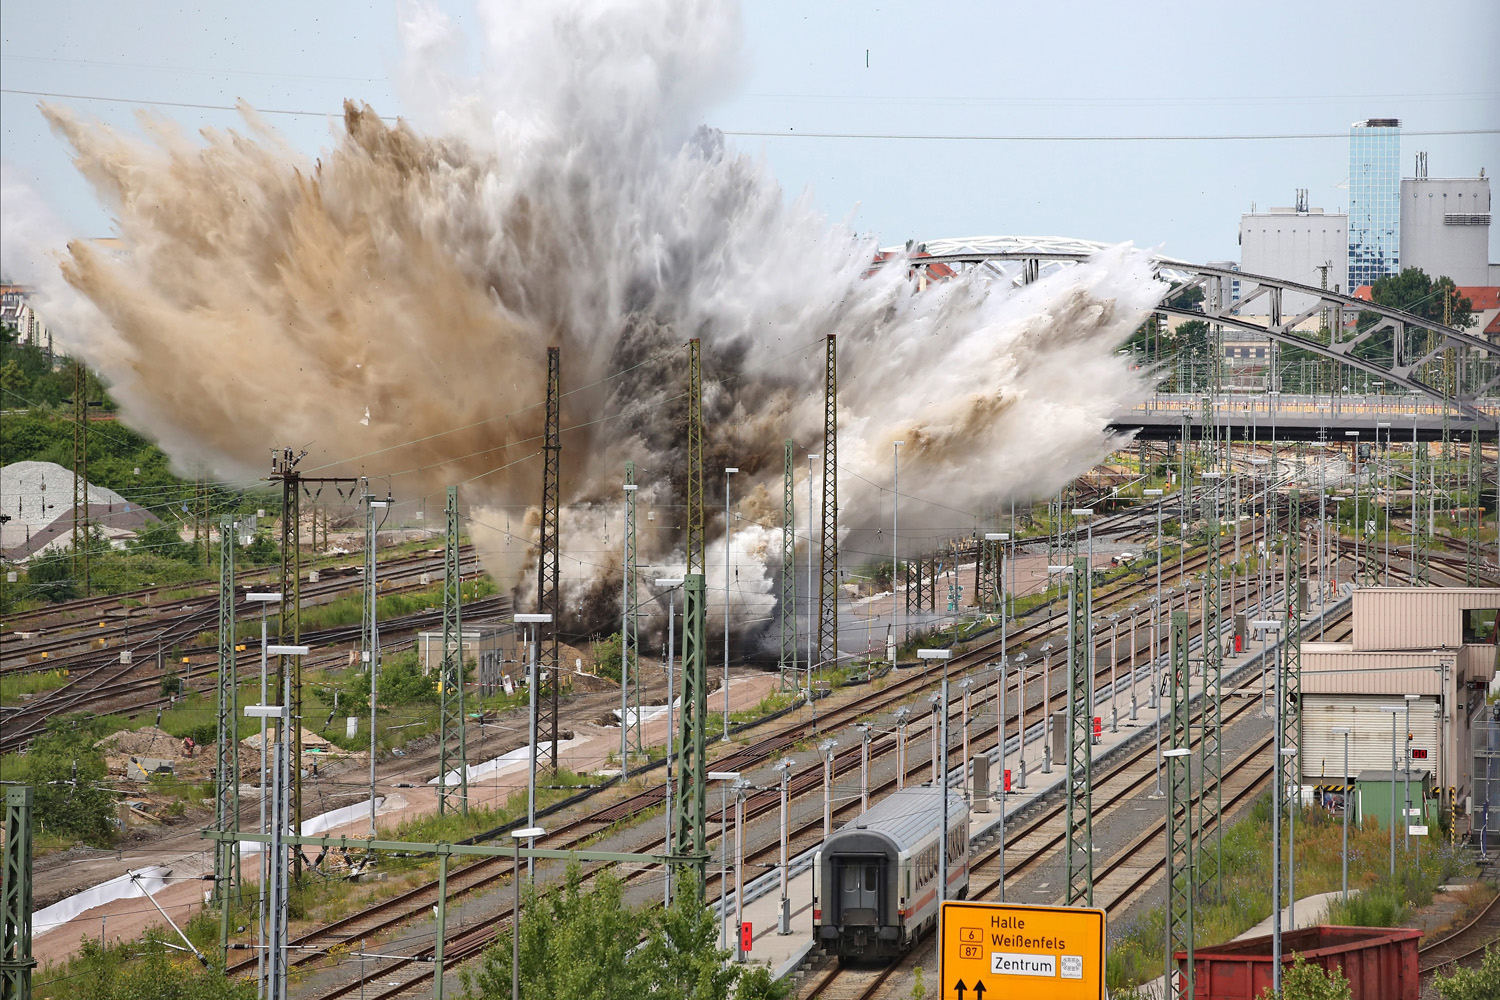 Jun. 12, 2014. An aerial bomb is detonated in a railway area in Leipzig, Germany. Experts of the bomb disposal team demolished the bomb, after the American aircraft bomb was discovered during construction works at the old post station.